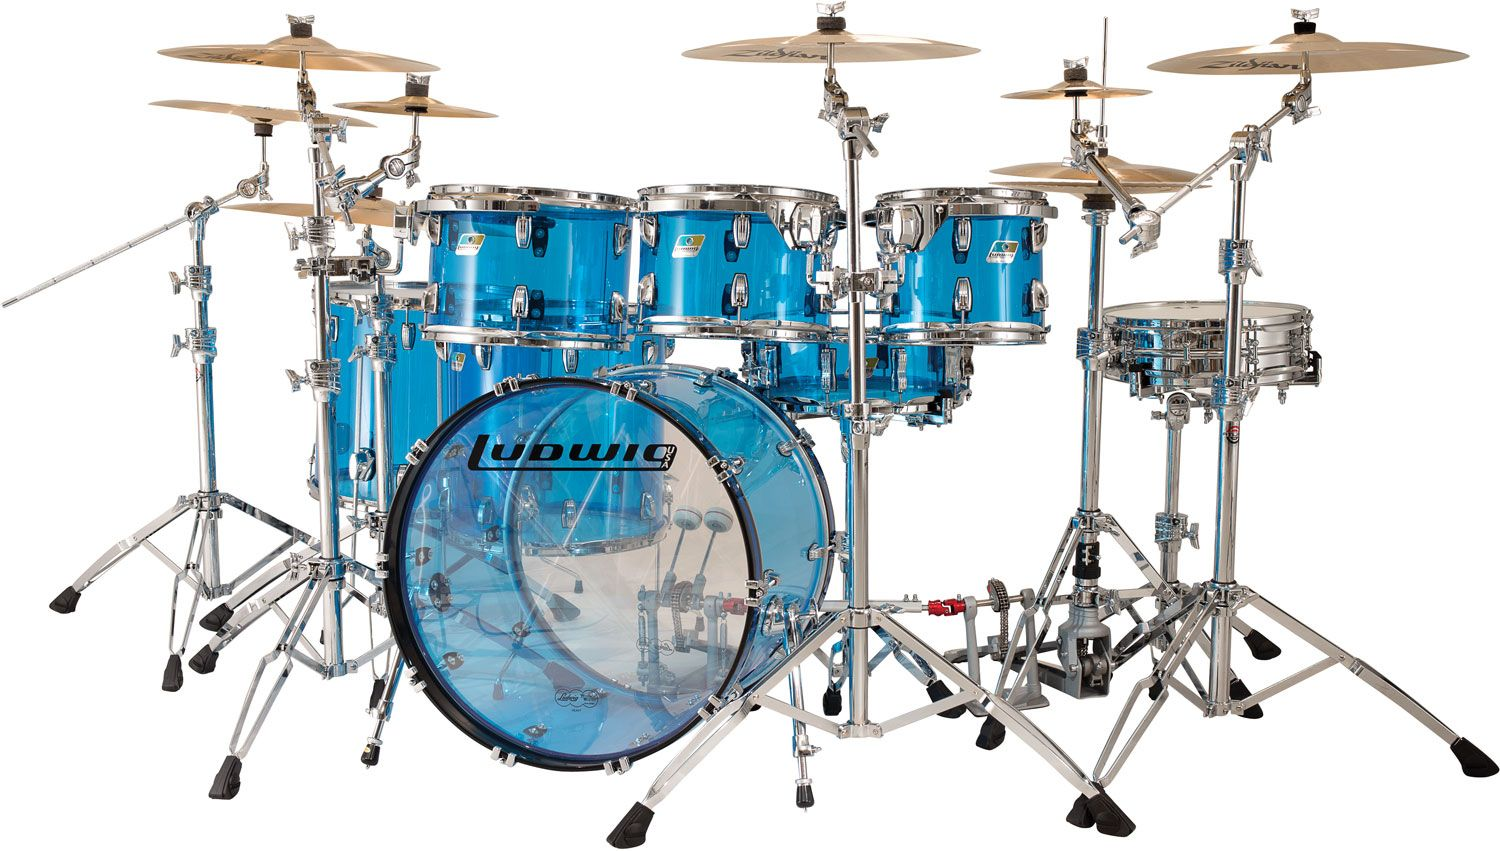 Acrylic Blue Ludwig Drum Set | Cool Drum Sets and Drums ...